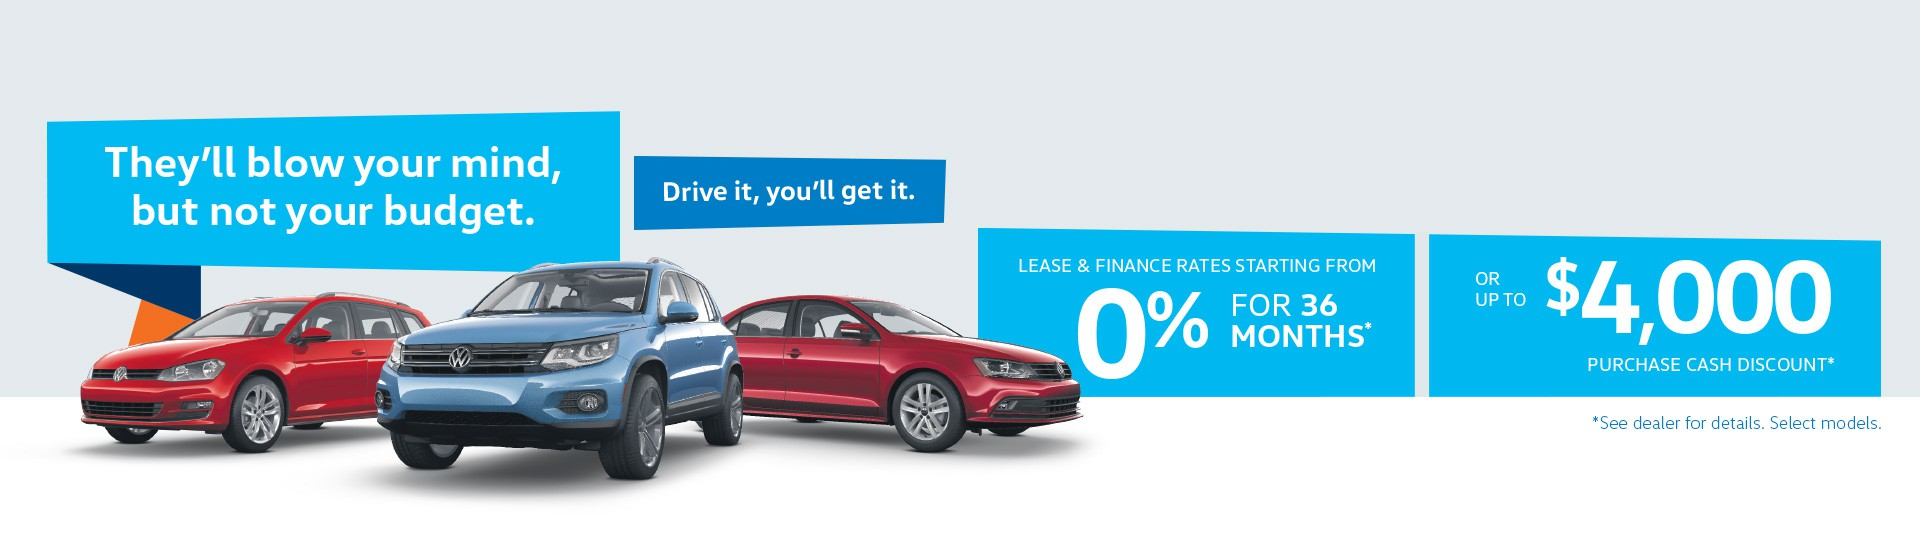 Humberview Vw New Used Cars Autos Post